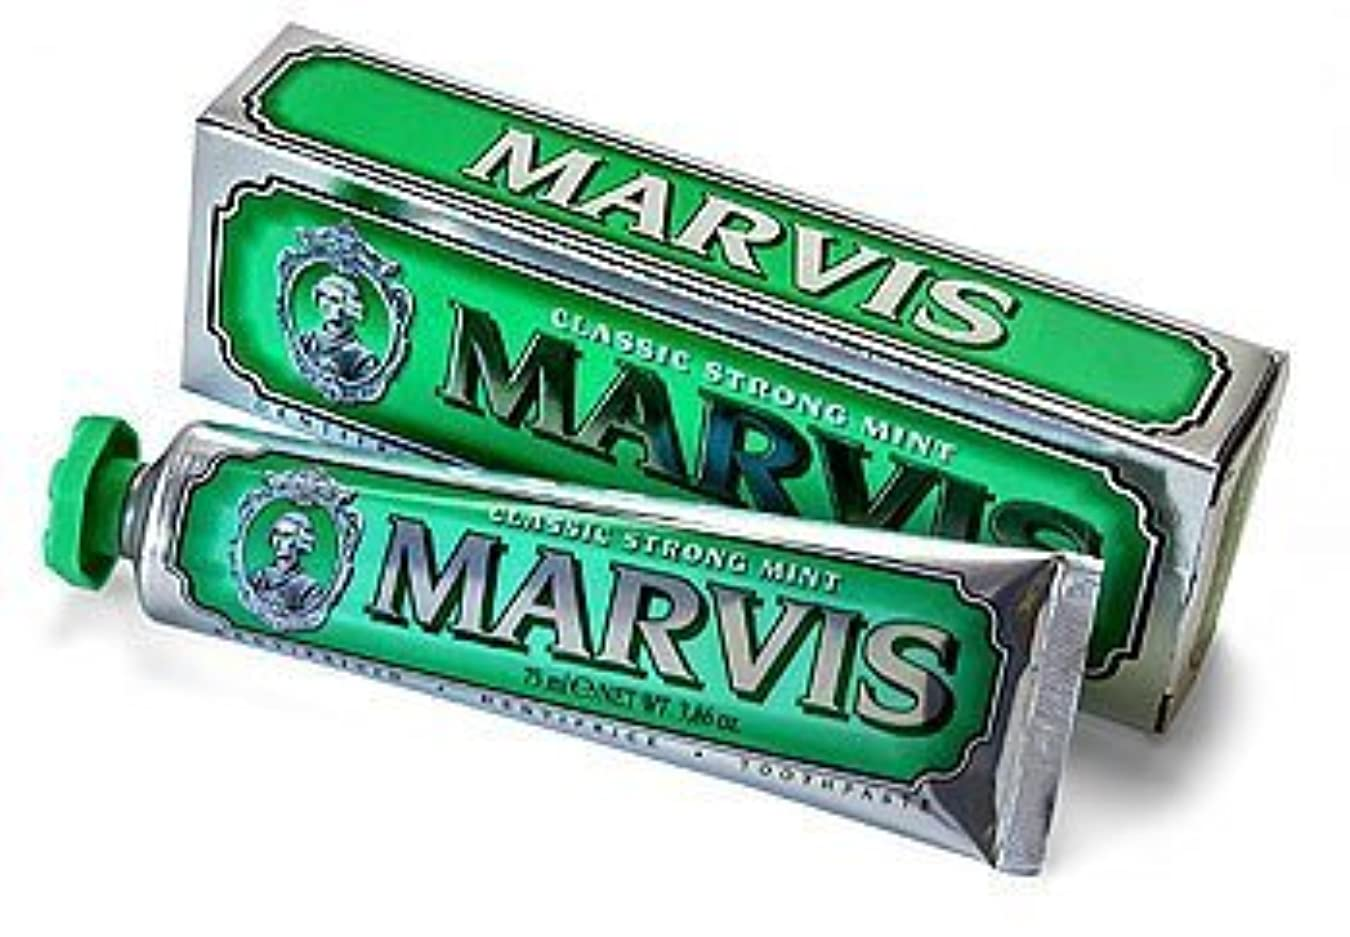 漁師申請中獣Marvis Classic Strong Mint Toothpaste - 75ml by Marvis [並行輸入品]